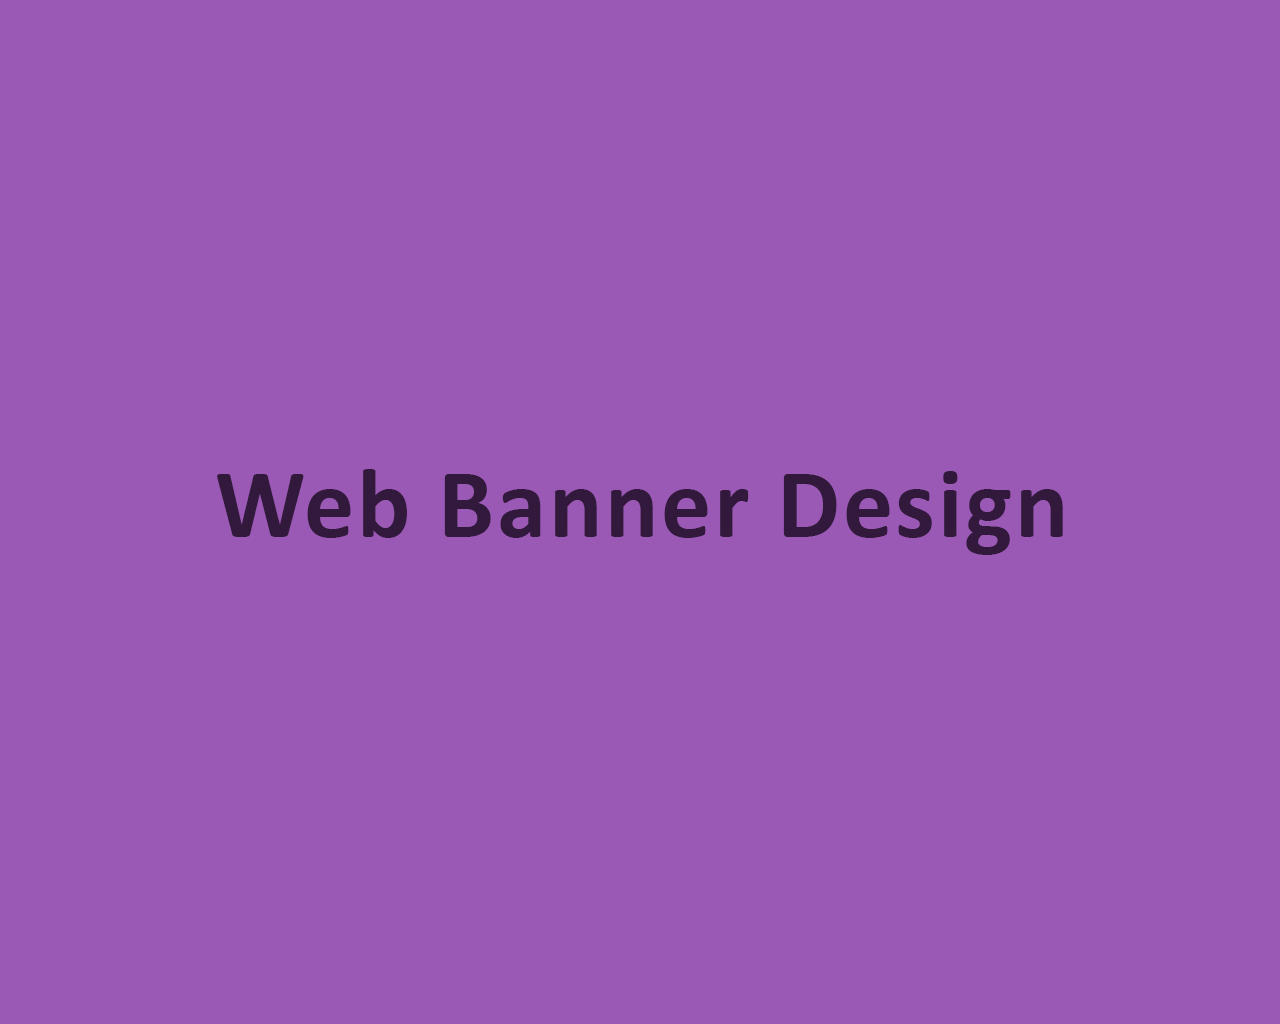 Web Banner Design by odiusfly - 105973